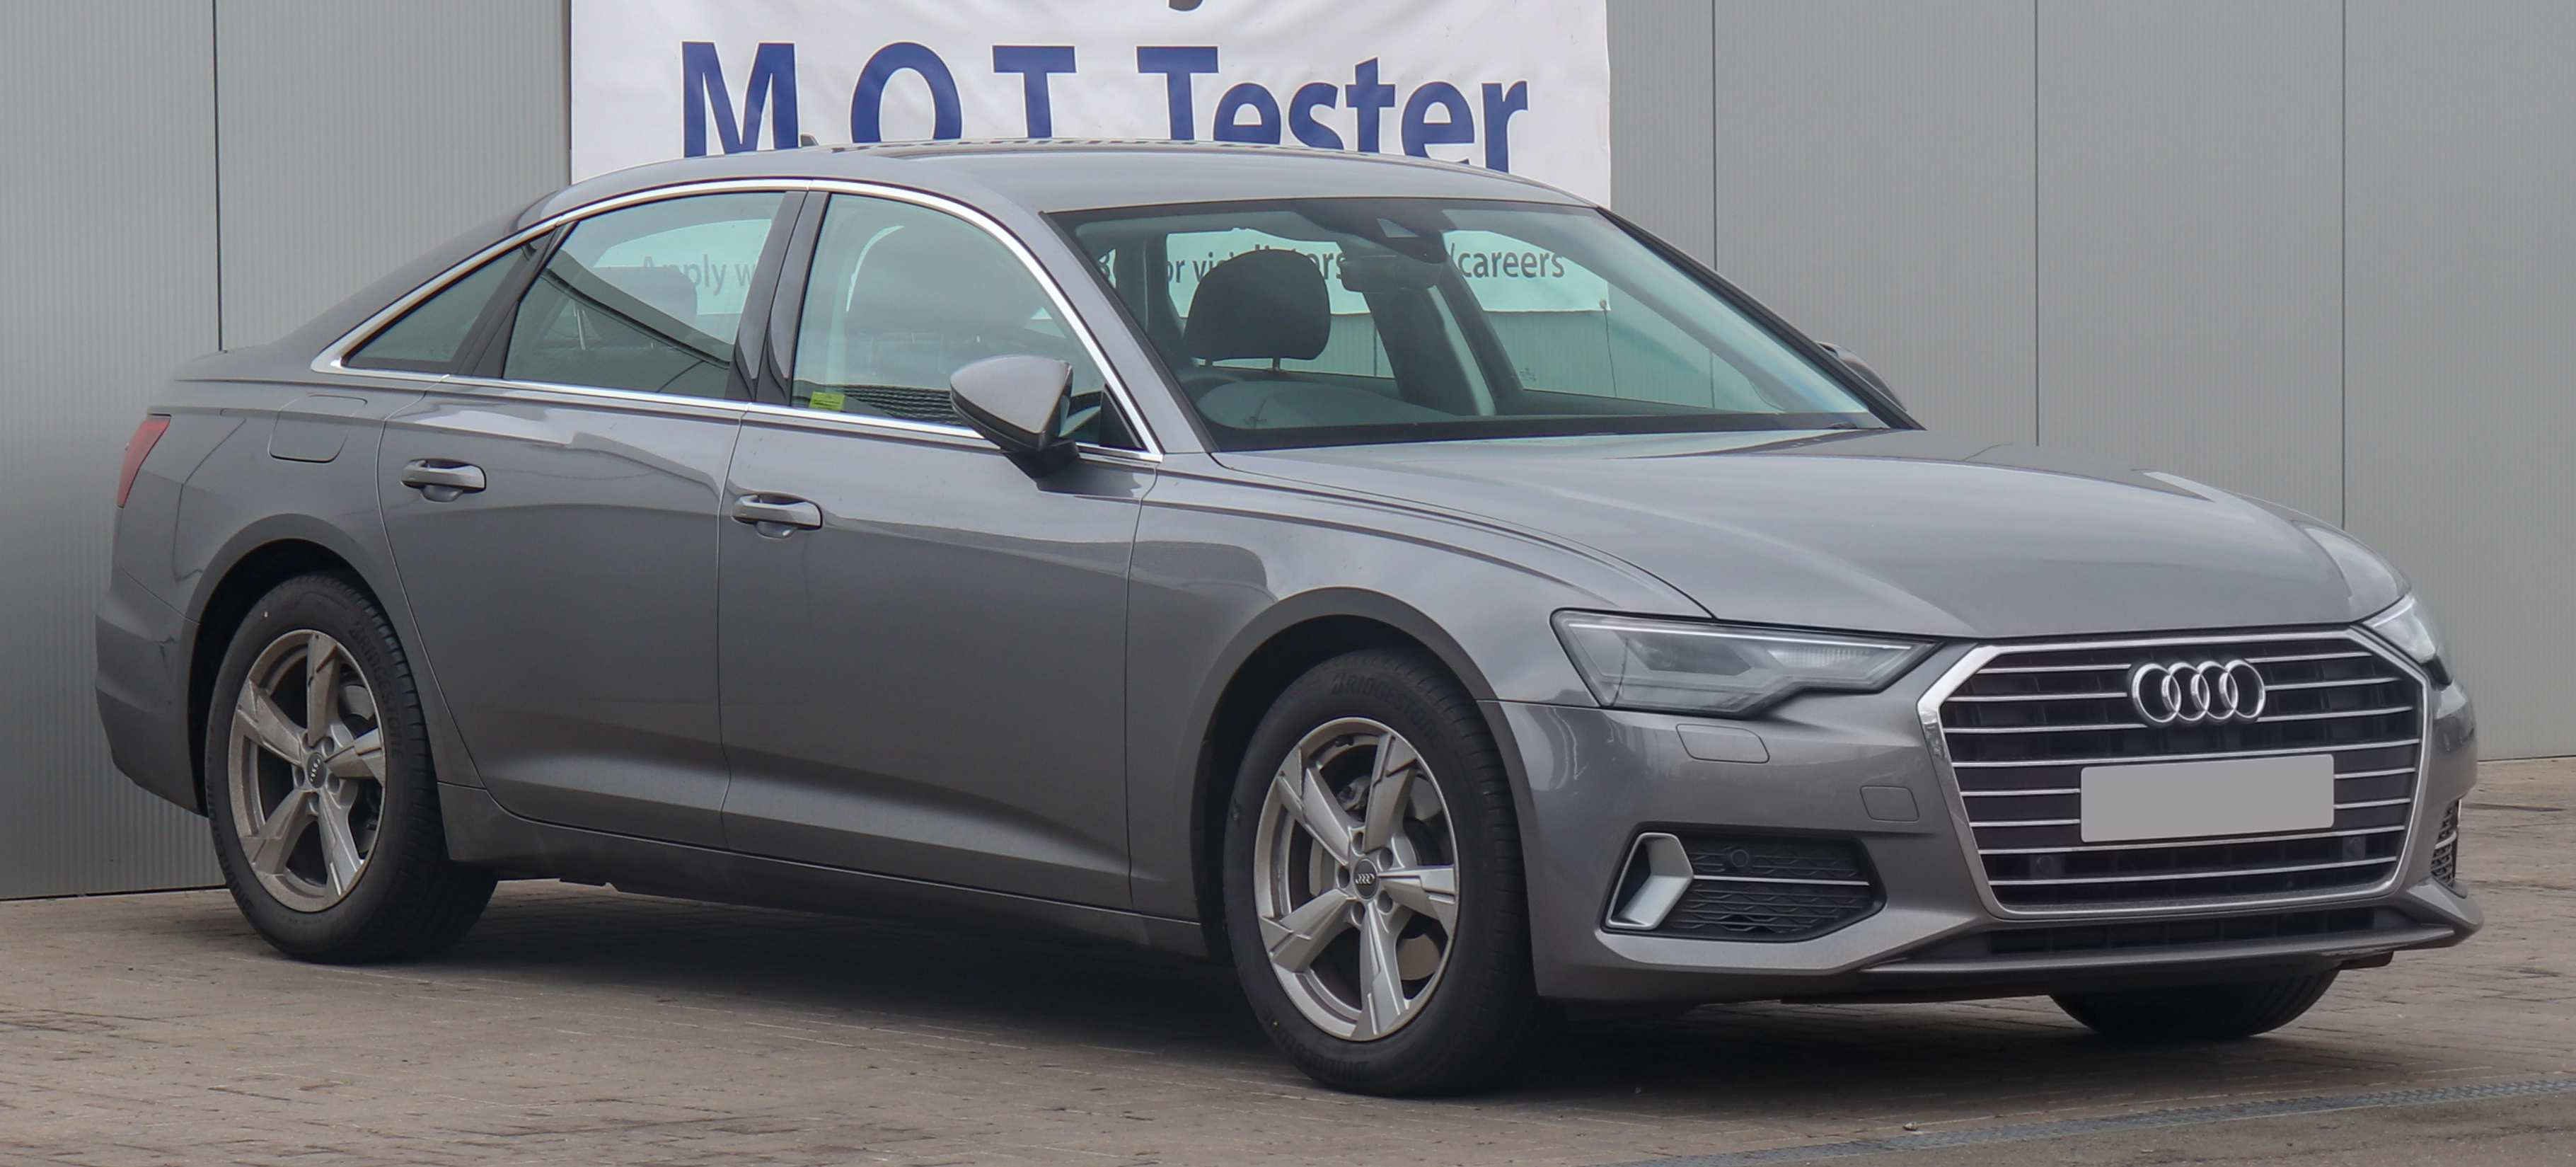 41 The Audi A6 2019 Ground Clearance Review Specs And Release Date New Review for Audi A6 2019 Ground Clearance Review Specs And Release Date